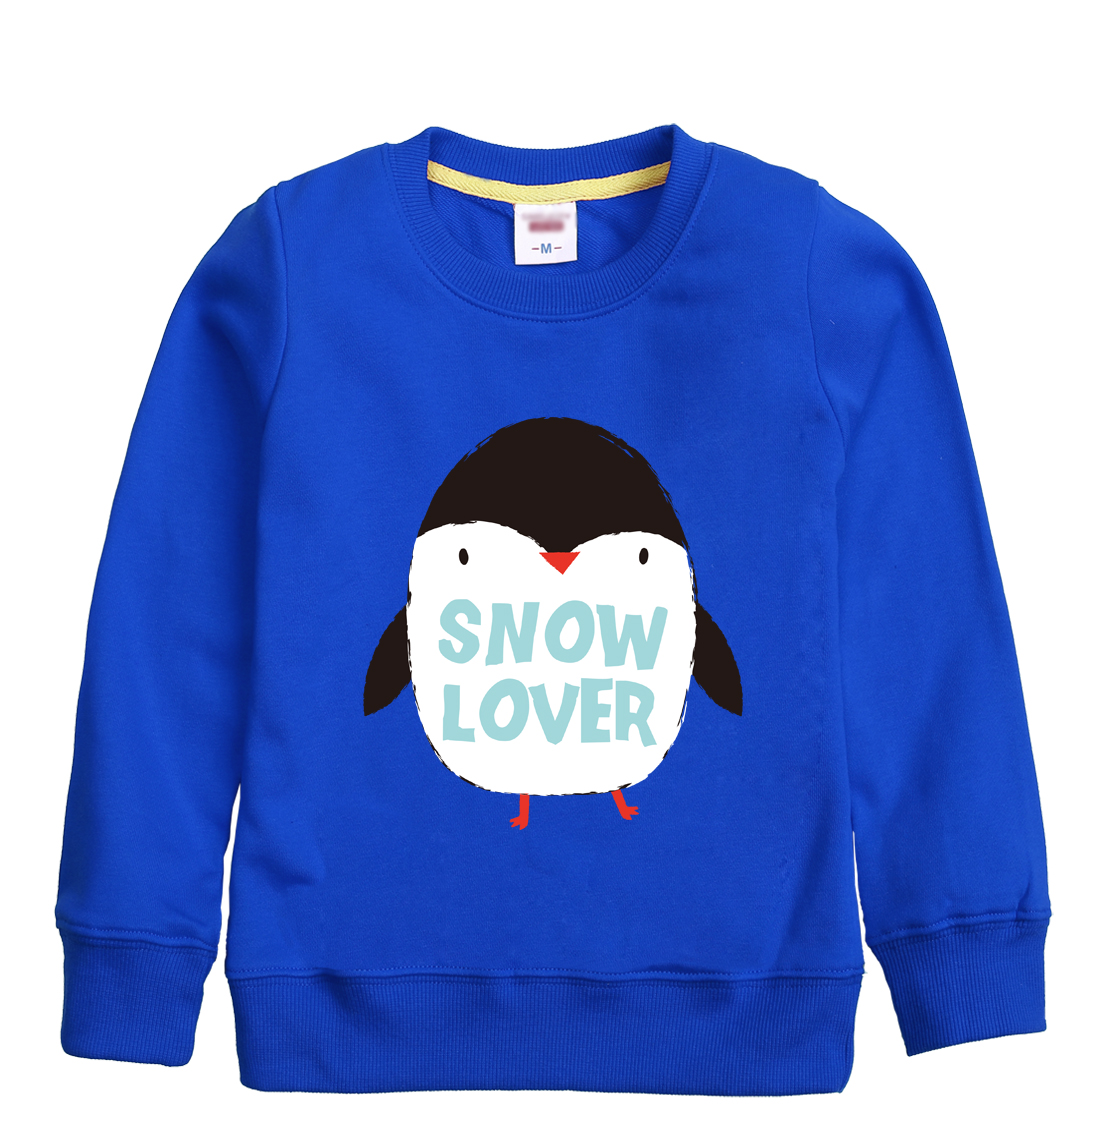 Snow lover pattern printed 2018 hot top sweatshirt design for children winter autumn sweater with eight colors for child choose